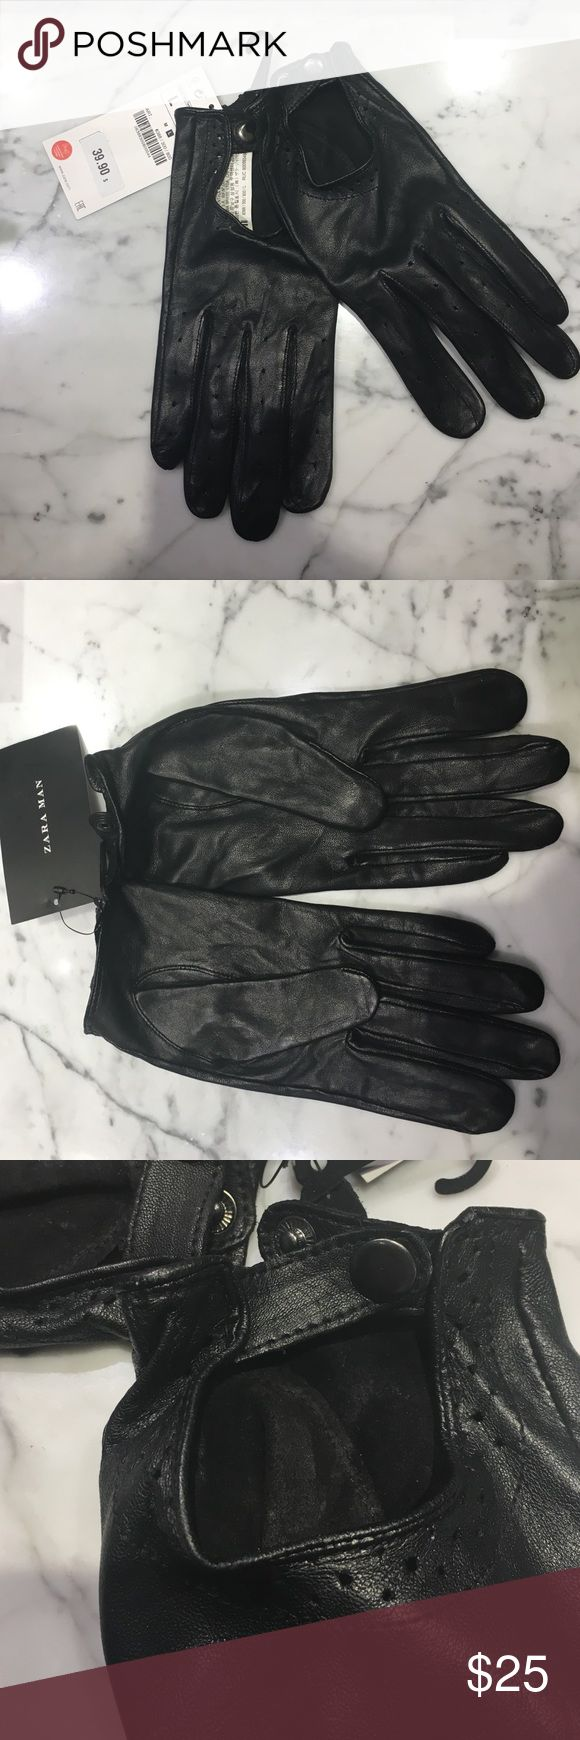 Kid leather driving gloves - Zara Man Driving Gloves Black Sheep Leather Driving Gloves Never Worn With Tags Zara